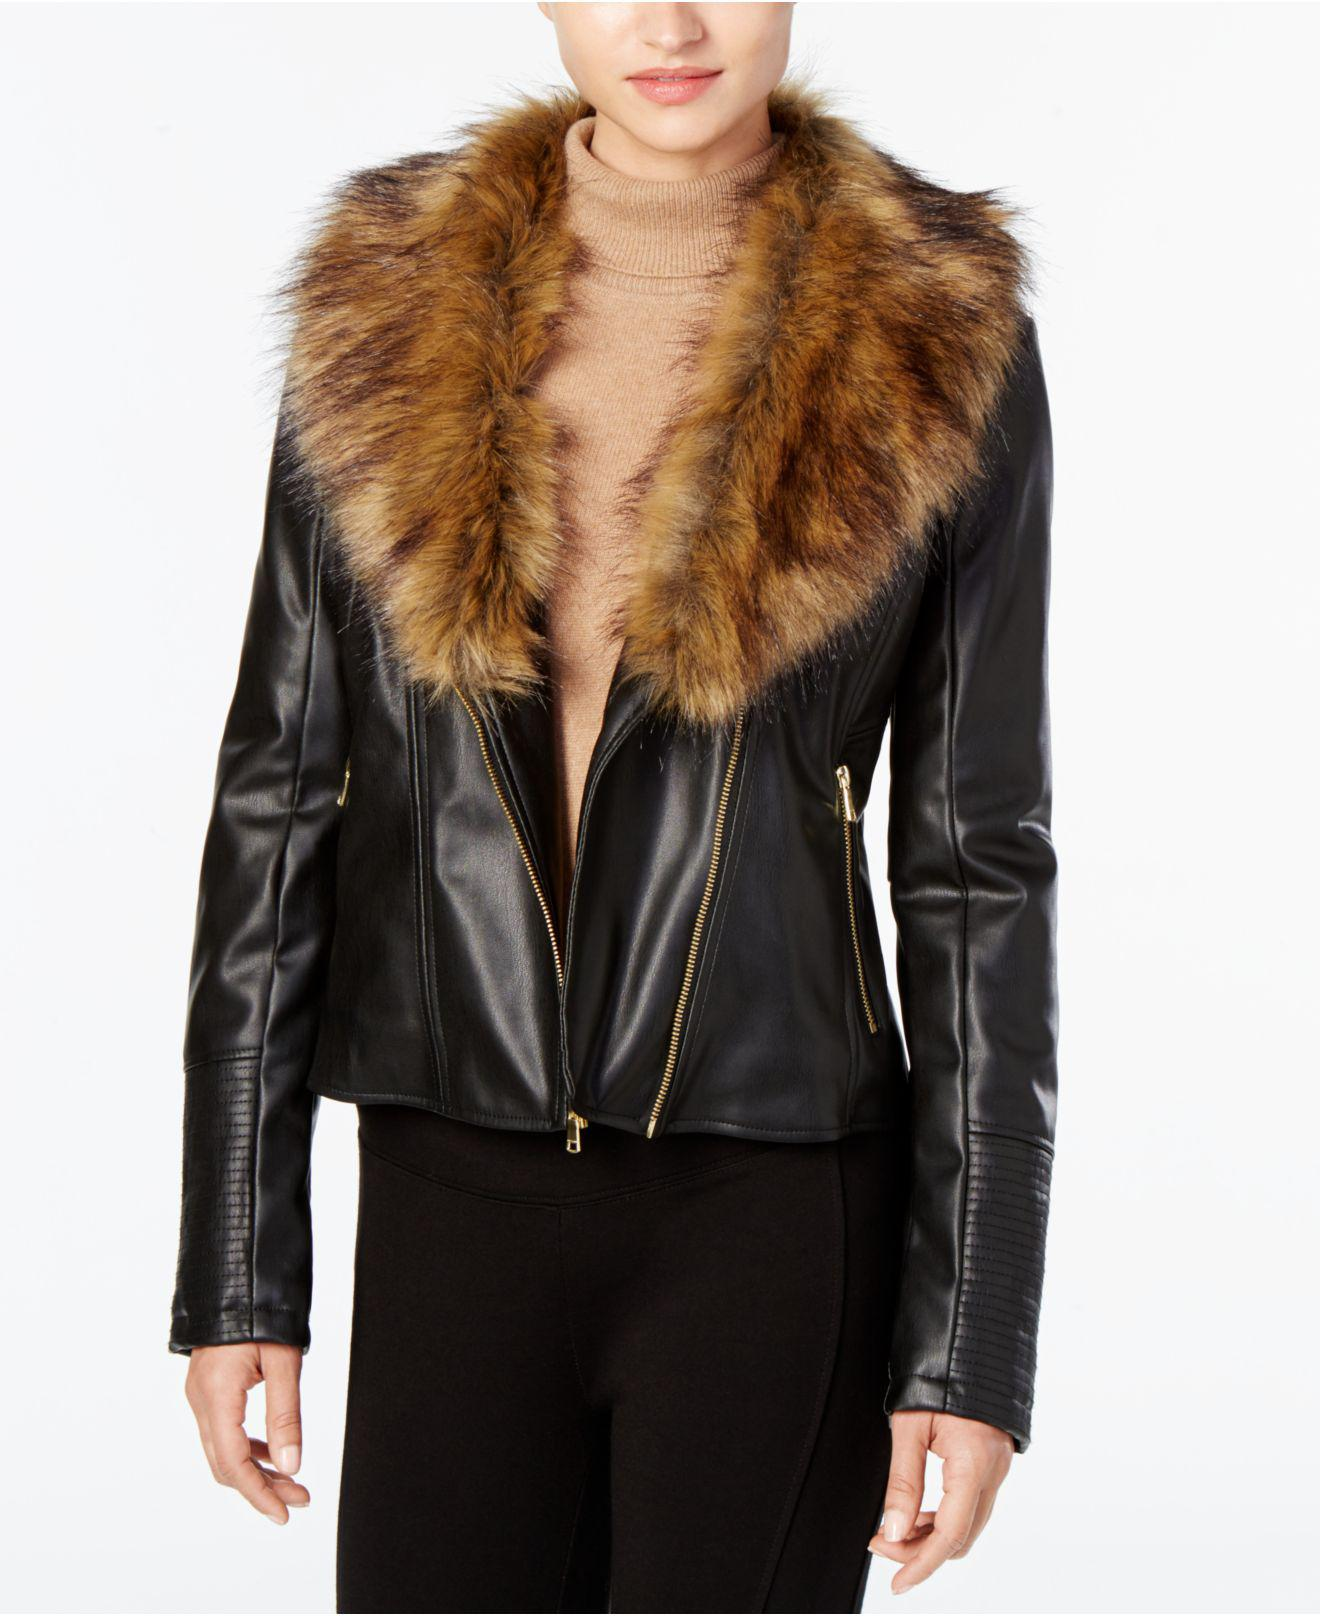 "Extravagant, elegant & totally en vogue. Our glamorous Jacket with Fur hood ""Icona"" will transform you into a real Style Icon on the coldest of days. This jacket impresses with its feminine design and tailored cut, and its extravagant XXL fur collar."